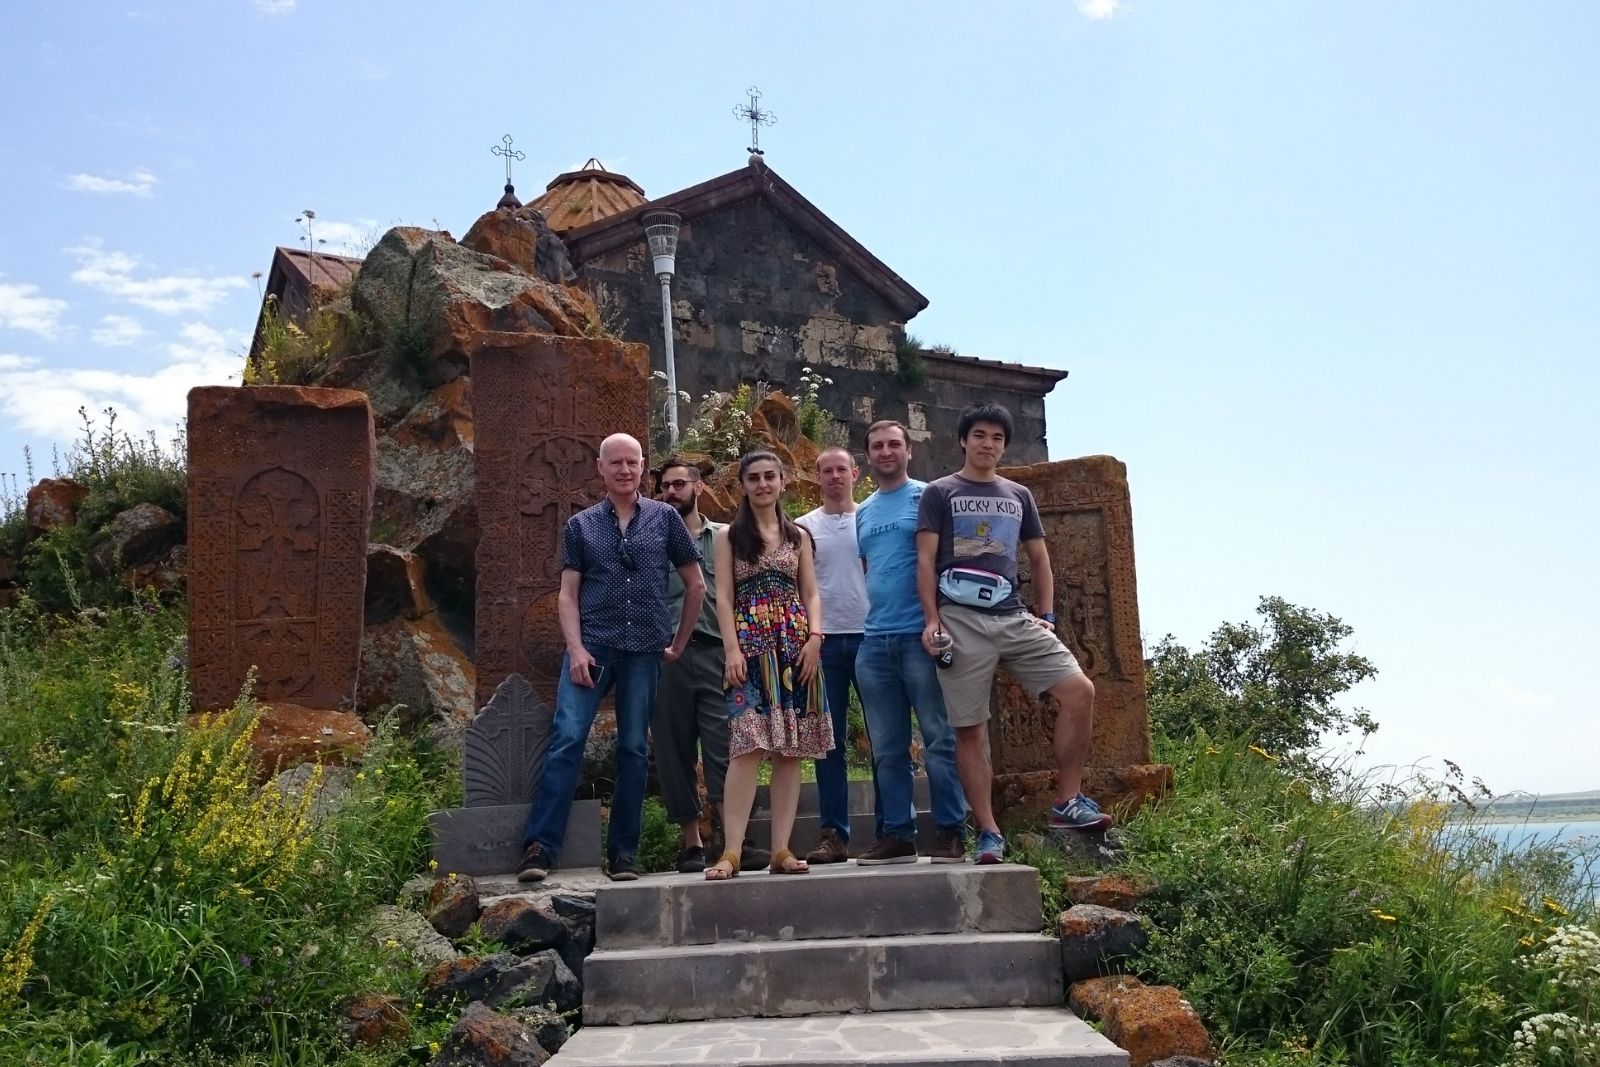 From left to right: John Winter, Nicholas Matheou, Sona Mnatsakanyan (instructor of Armenian), Thomas Jurczyk, Khachik Gevorgyan (Director of ASPIRANTUM), Chihiro Taguchi